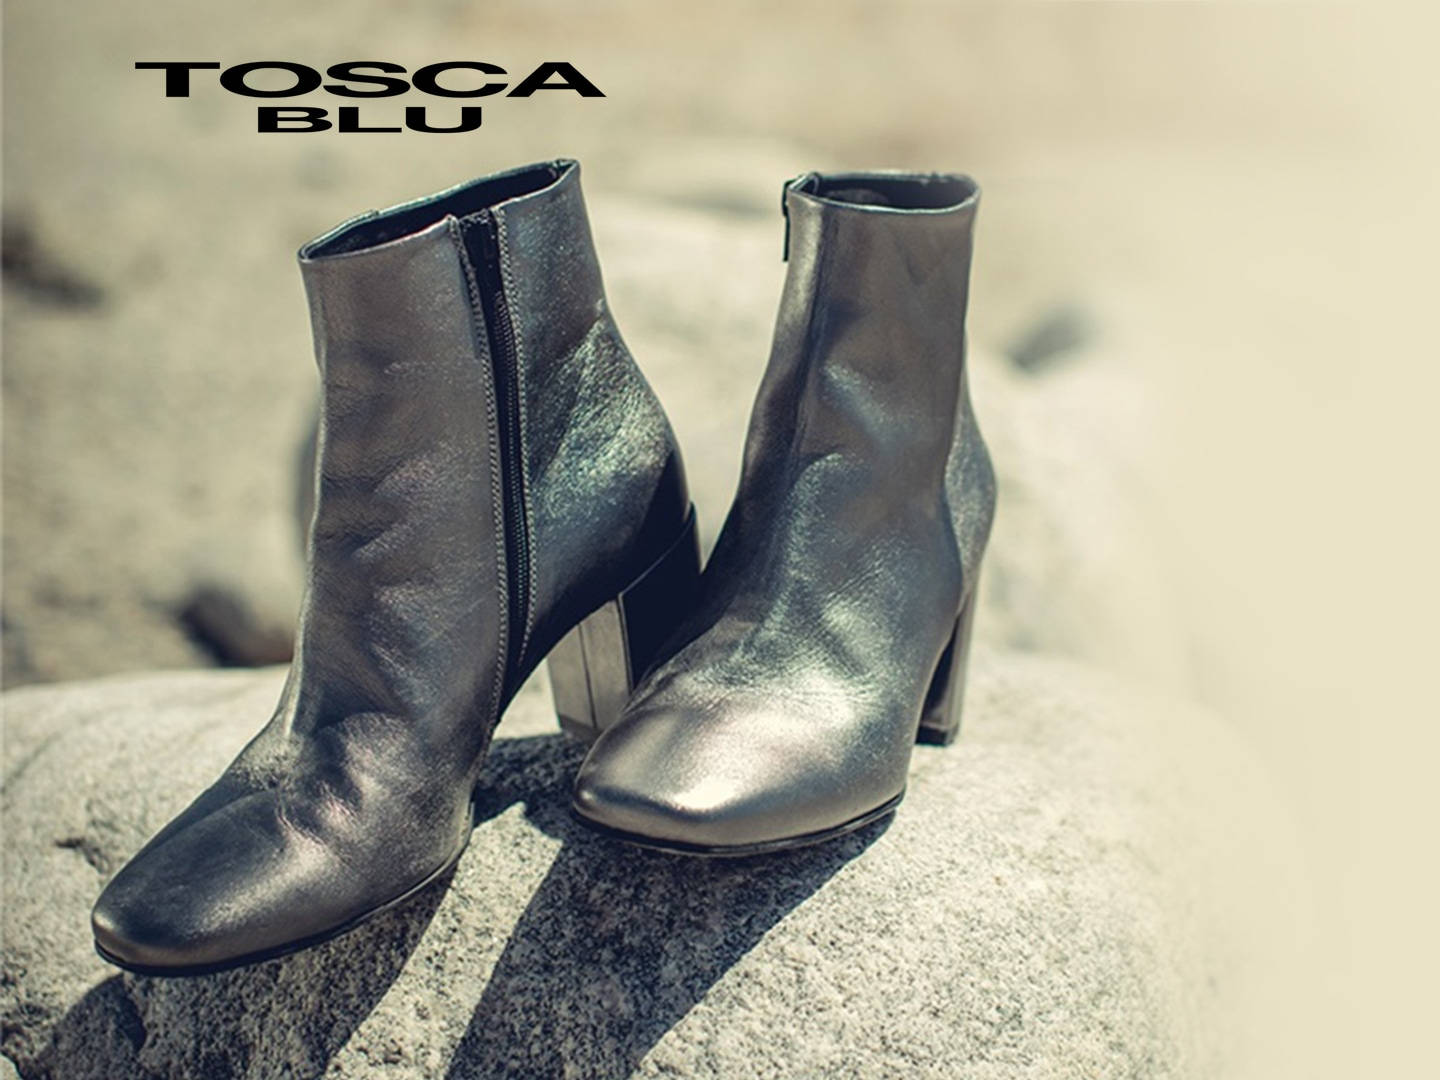 Tosca Blu Shoes